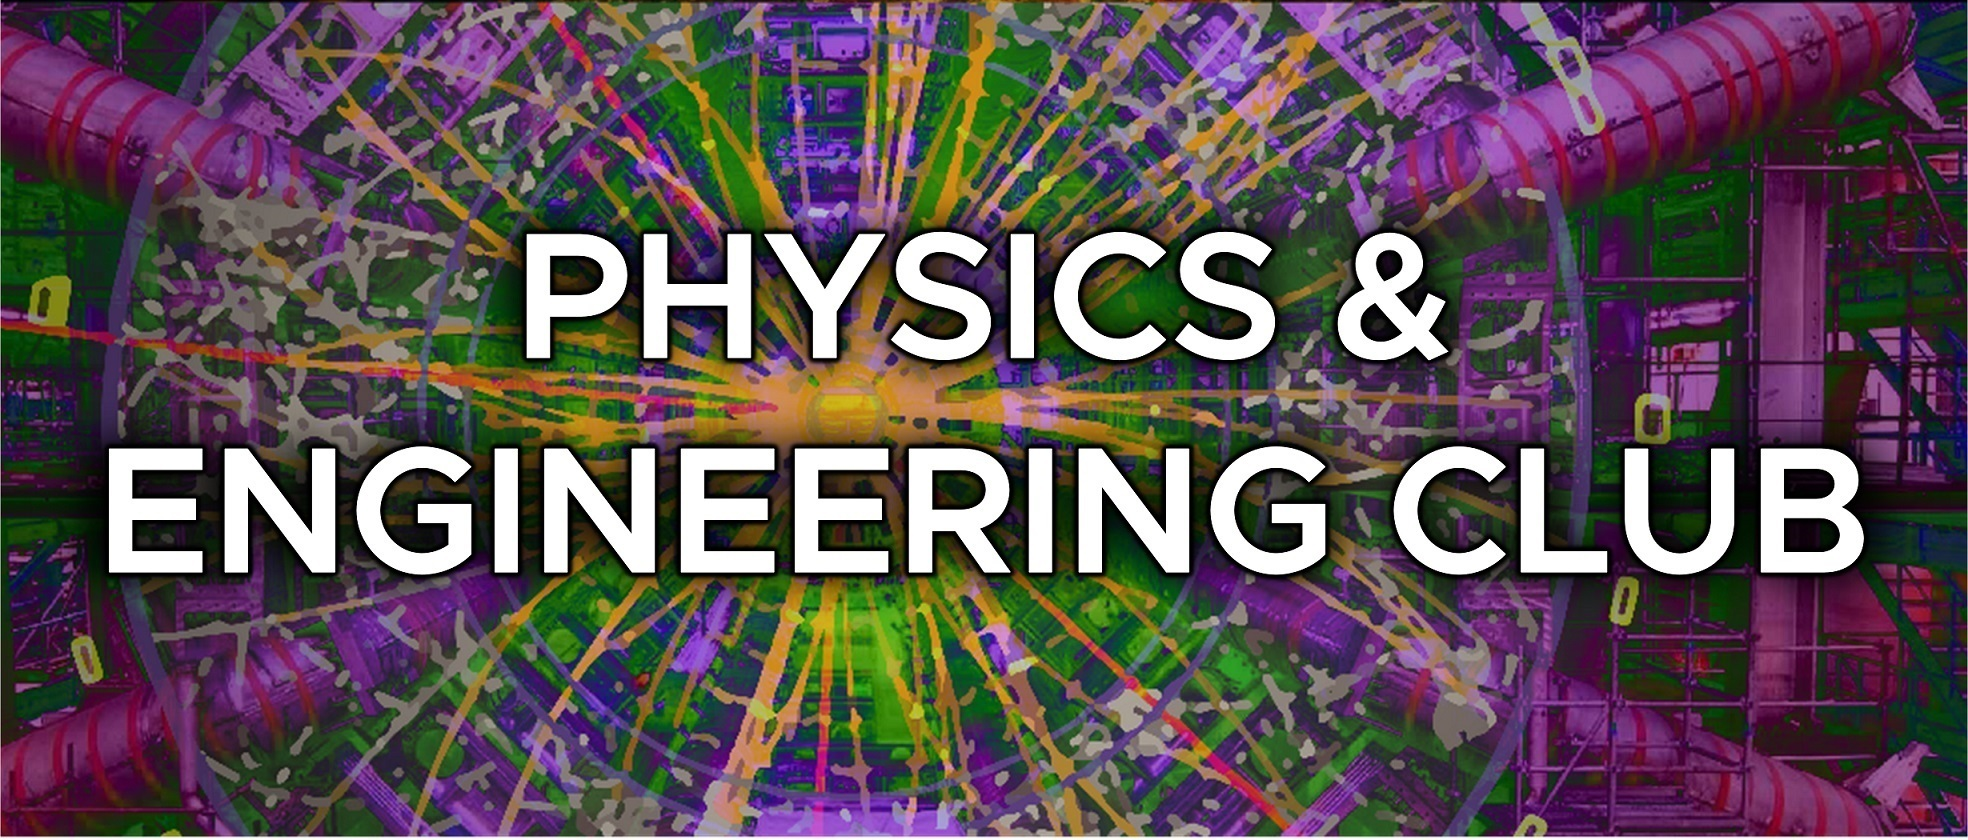 Physics  Engineering Club Logo.jpg